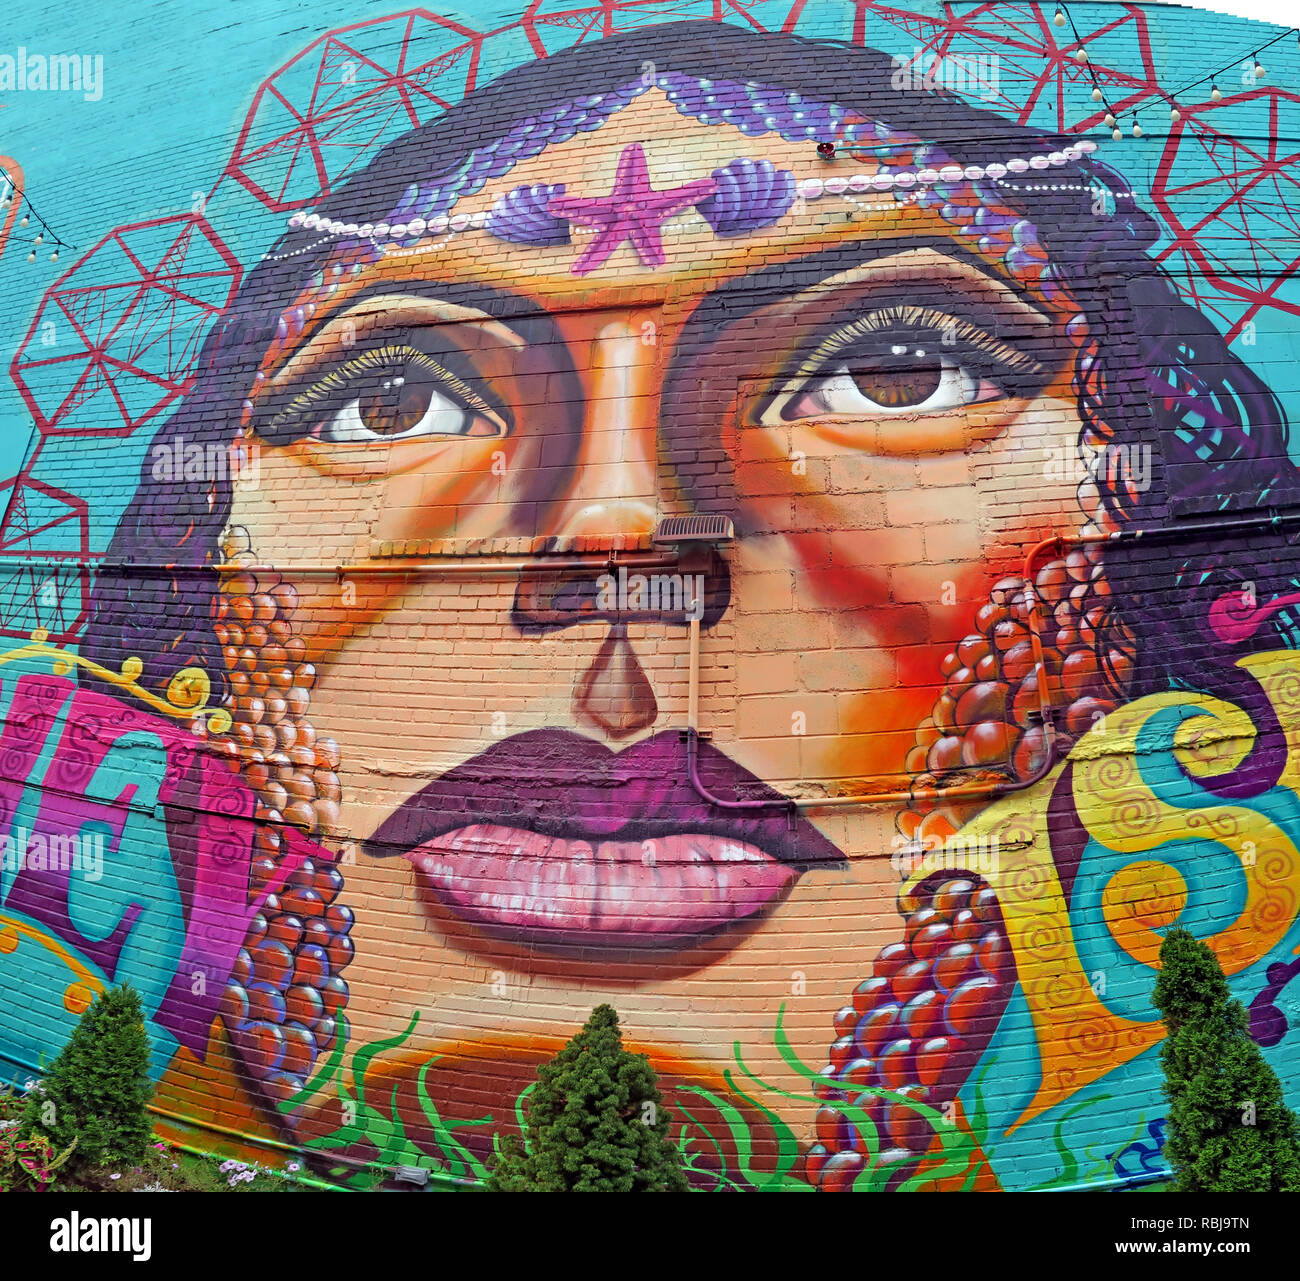 Coney Island woman painting on wall, Brooklyn, New York City, NY, USA - Stock Image